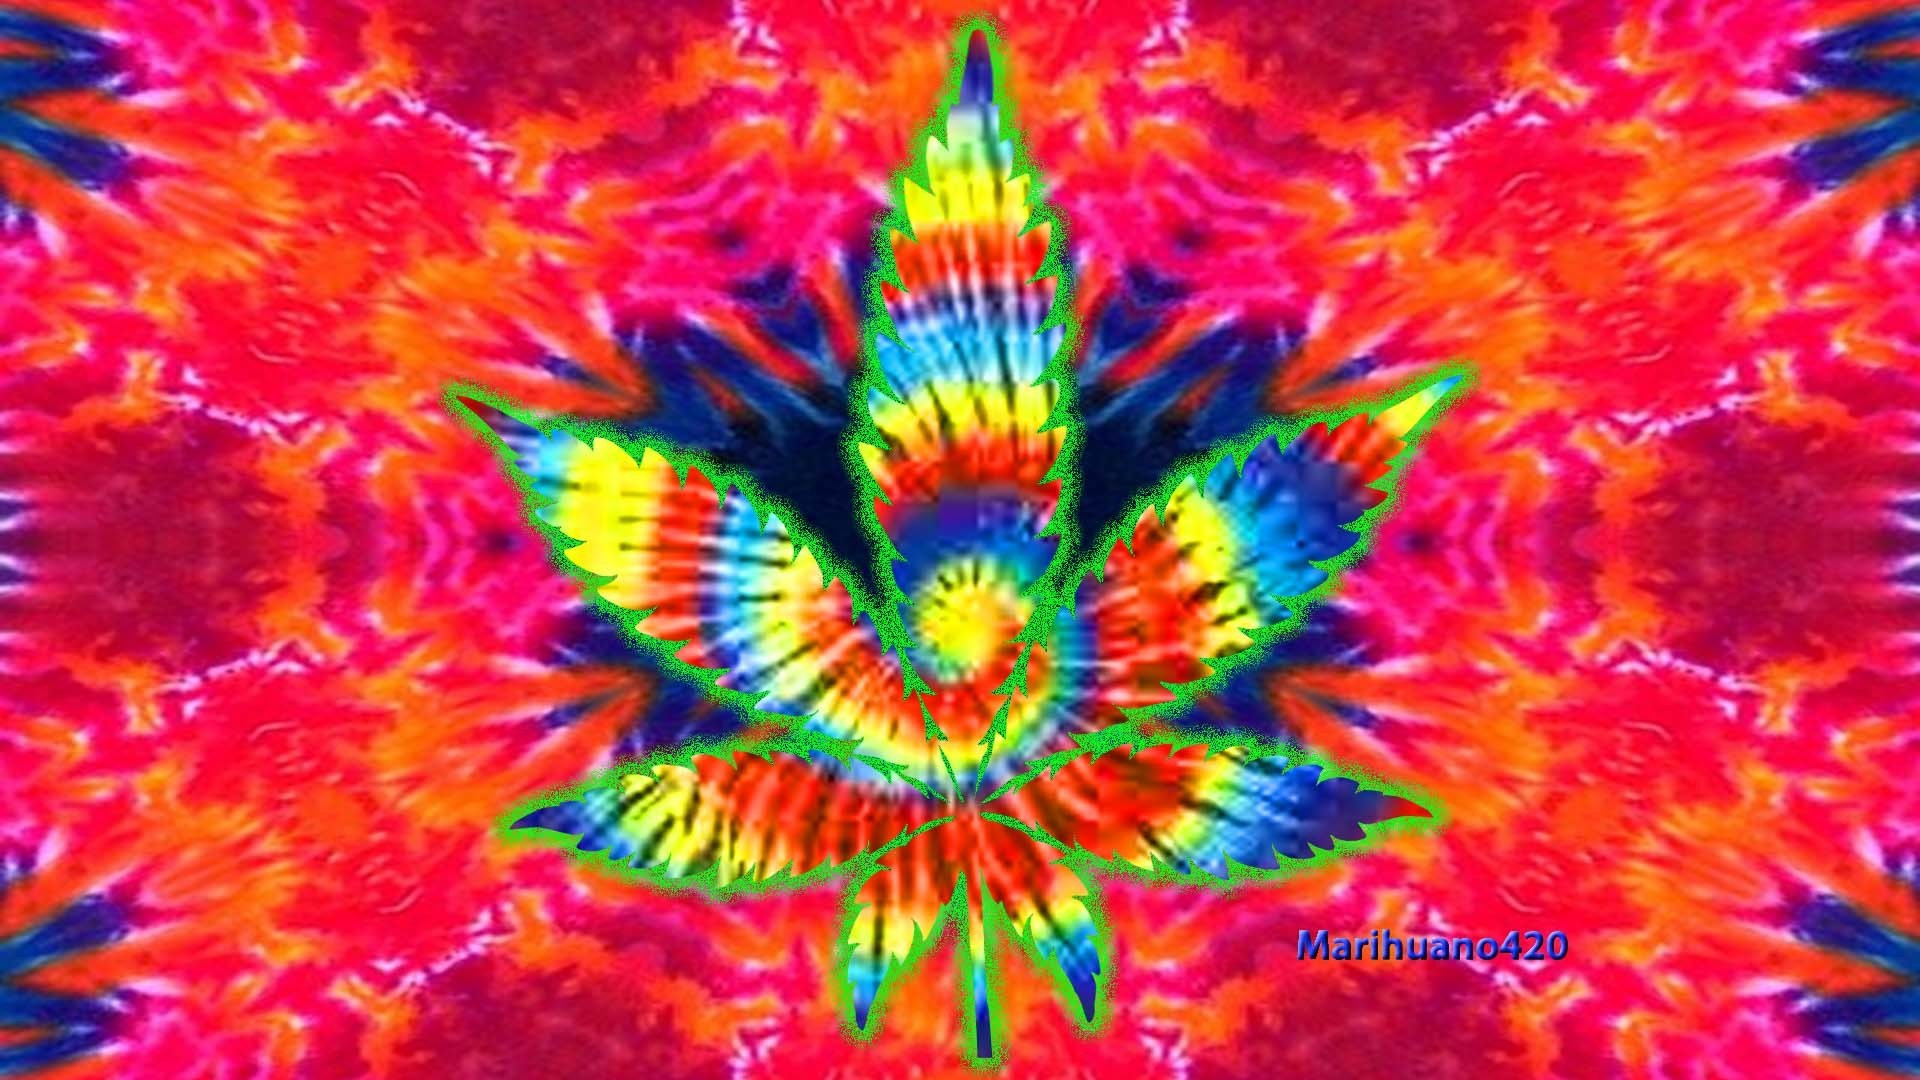 1920x1080 Awesome Trippy Weed Pics Wallpaper of awesome full screen HD wallpapers to  download for free.